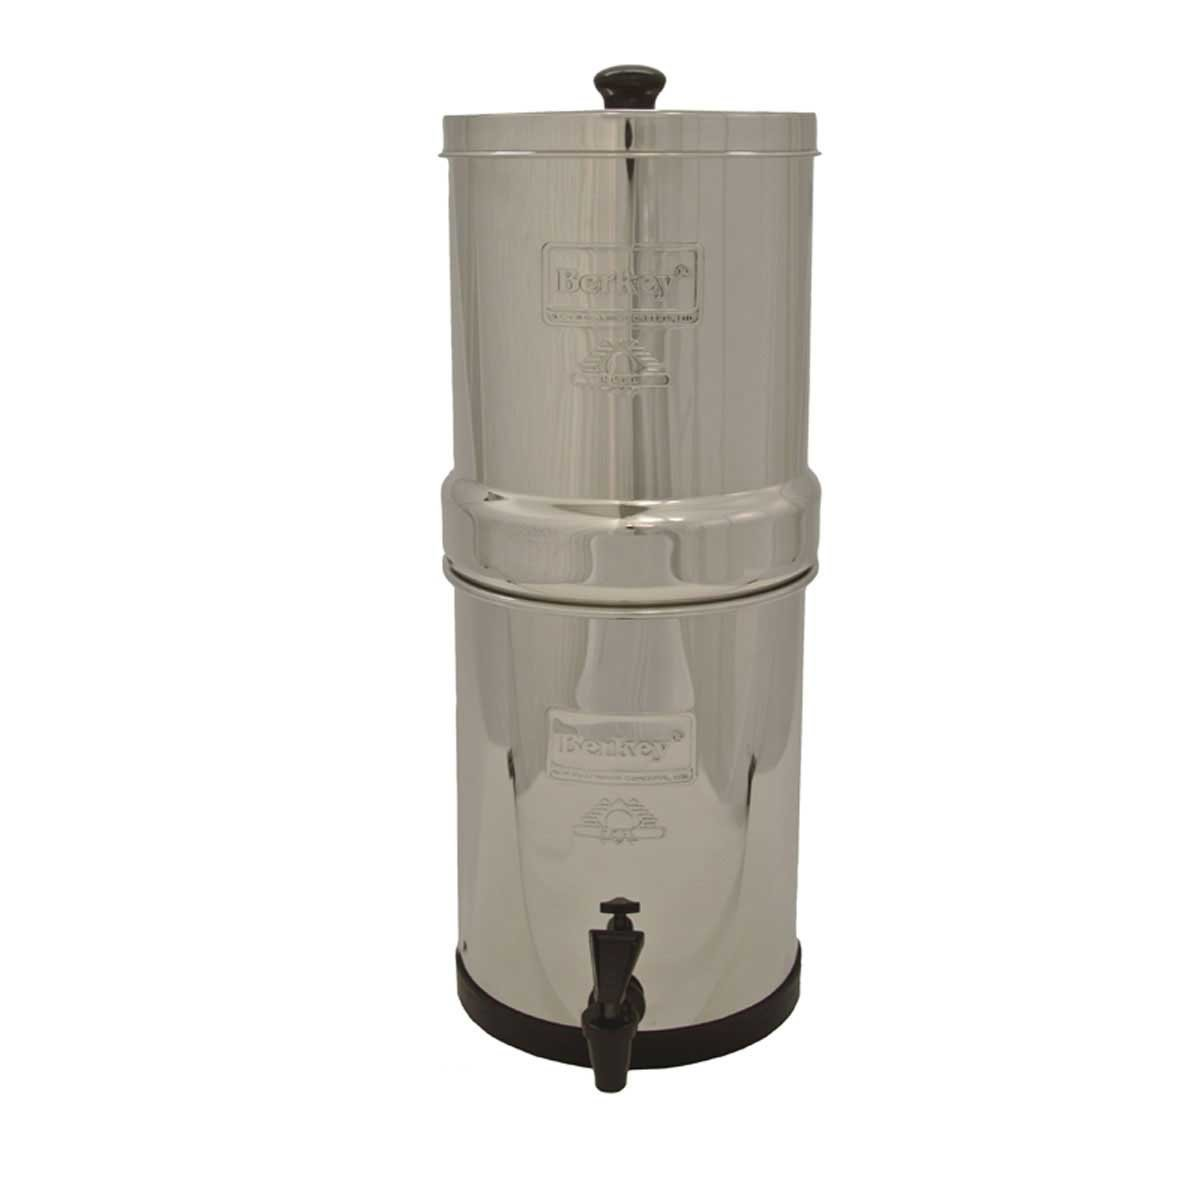 Discounts average $24 off with a GetBerkey promo code or coupon. 22 GetBerkey coupons now on RetailMeNot. Log In / Sign up. $ Cash Back. Home; GetBerkey Coupon Codes. Add Favorite. Submit a Coupon. Submit a new coupon and help others save! Store Website. Get 50% off MSRP Big Berkey Water Filter System - Gallons.